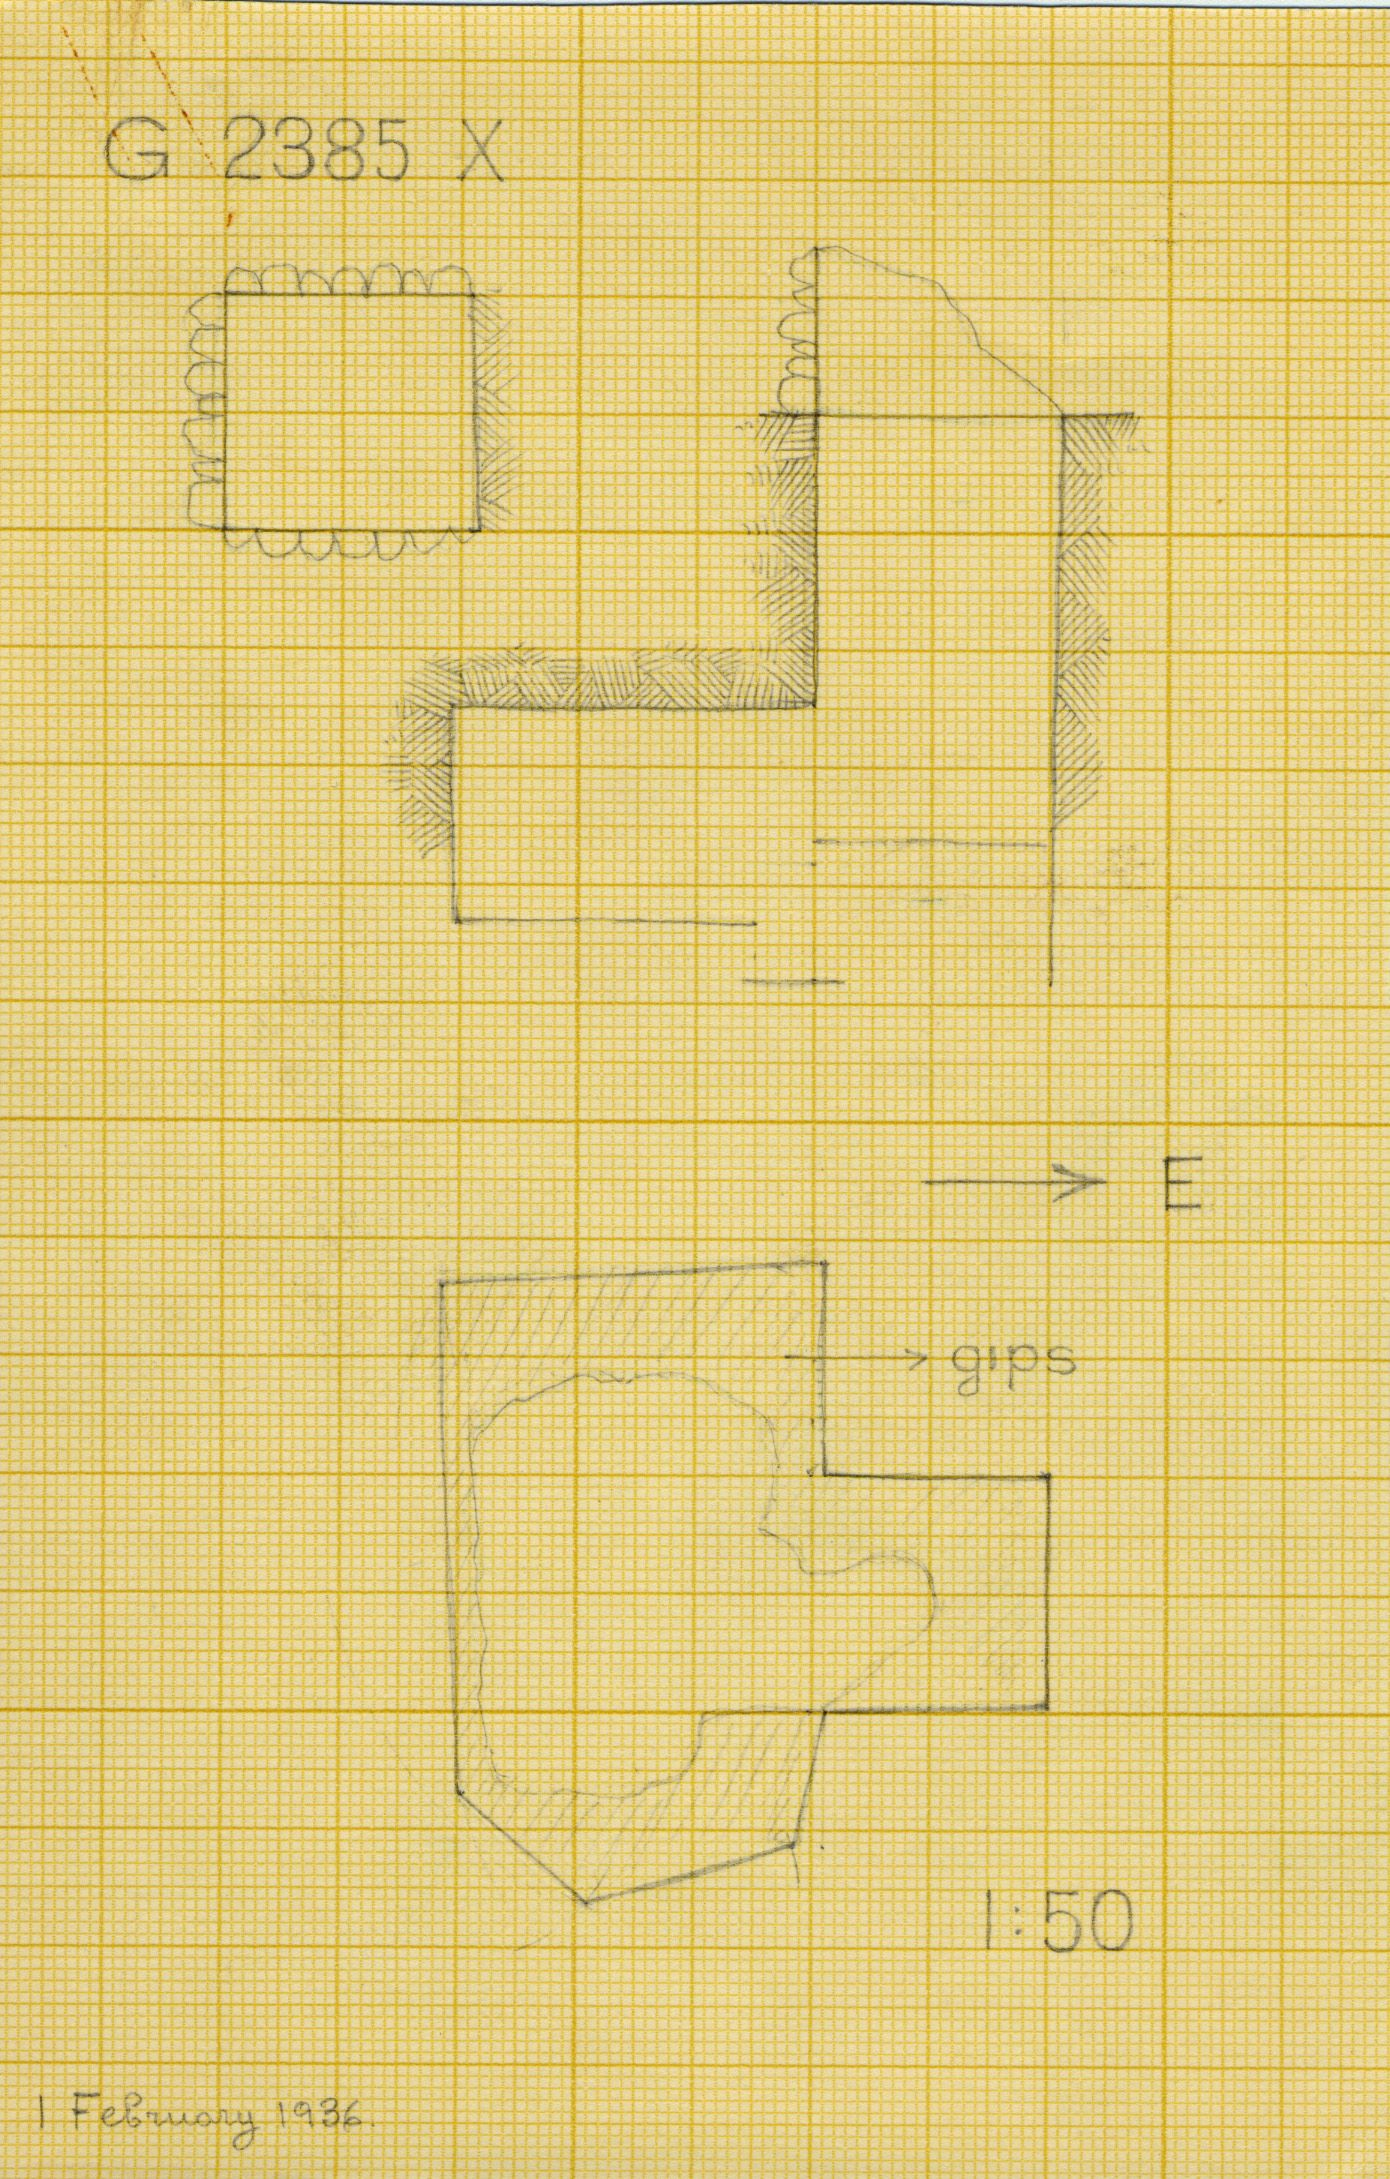 Maps and plans: G 2385, Shaft X